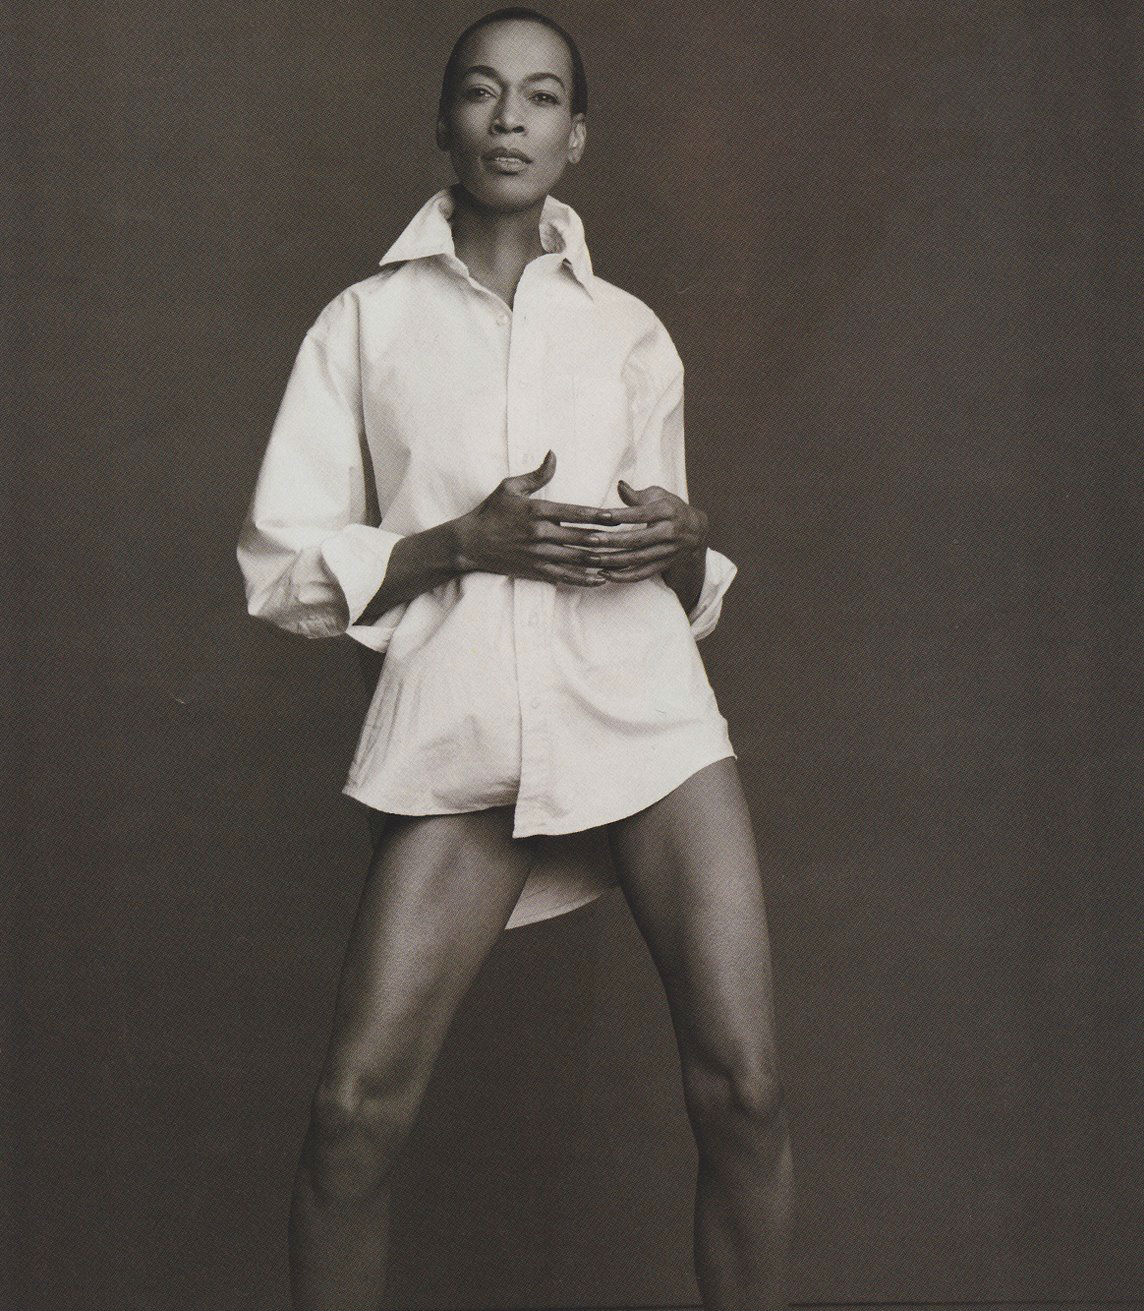 iconic-black-models-who-changed-the-fashion-industry-01